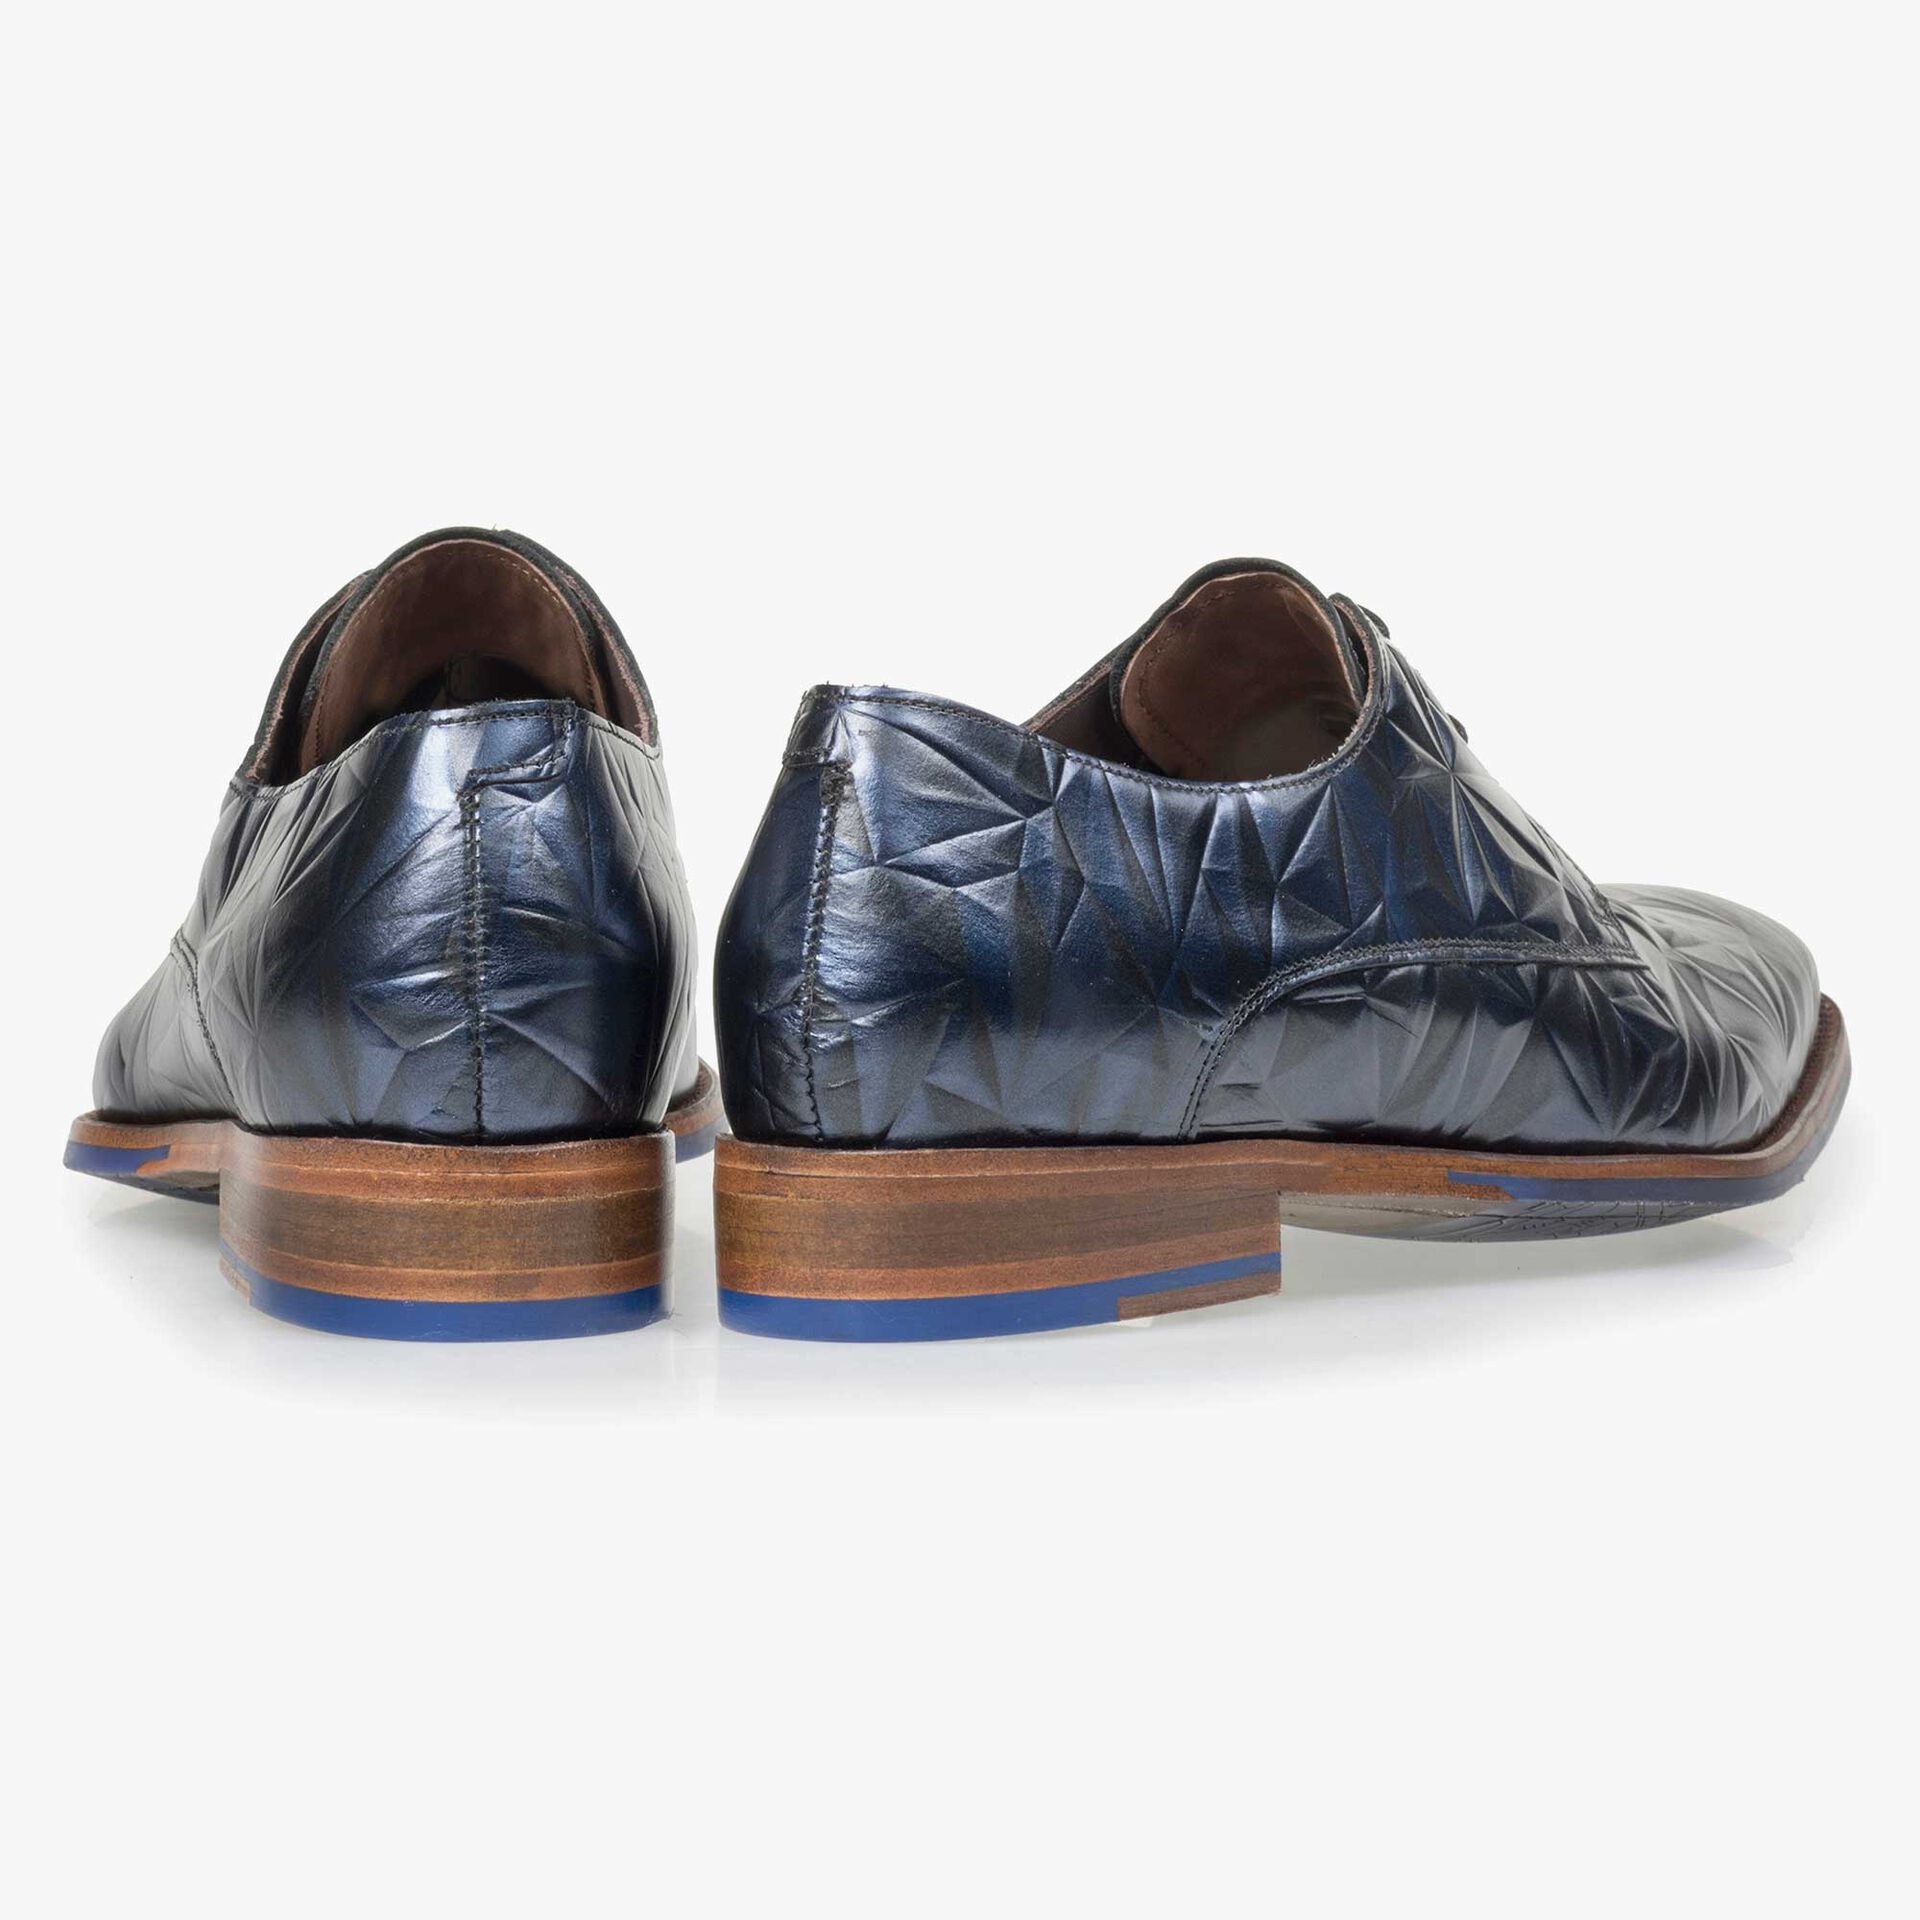 Floris van Bommel men's blue leather lace shoe finished with a black 3D print